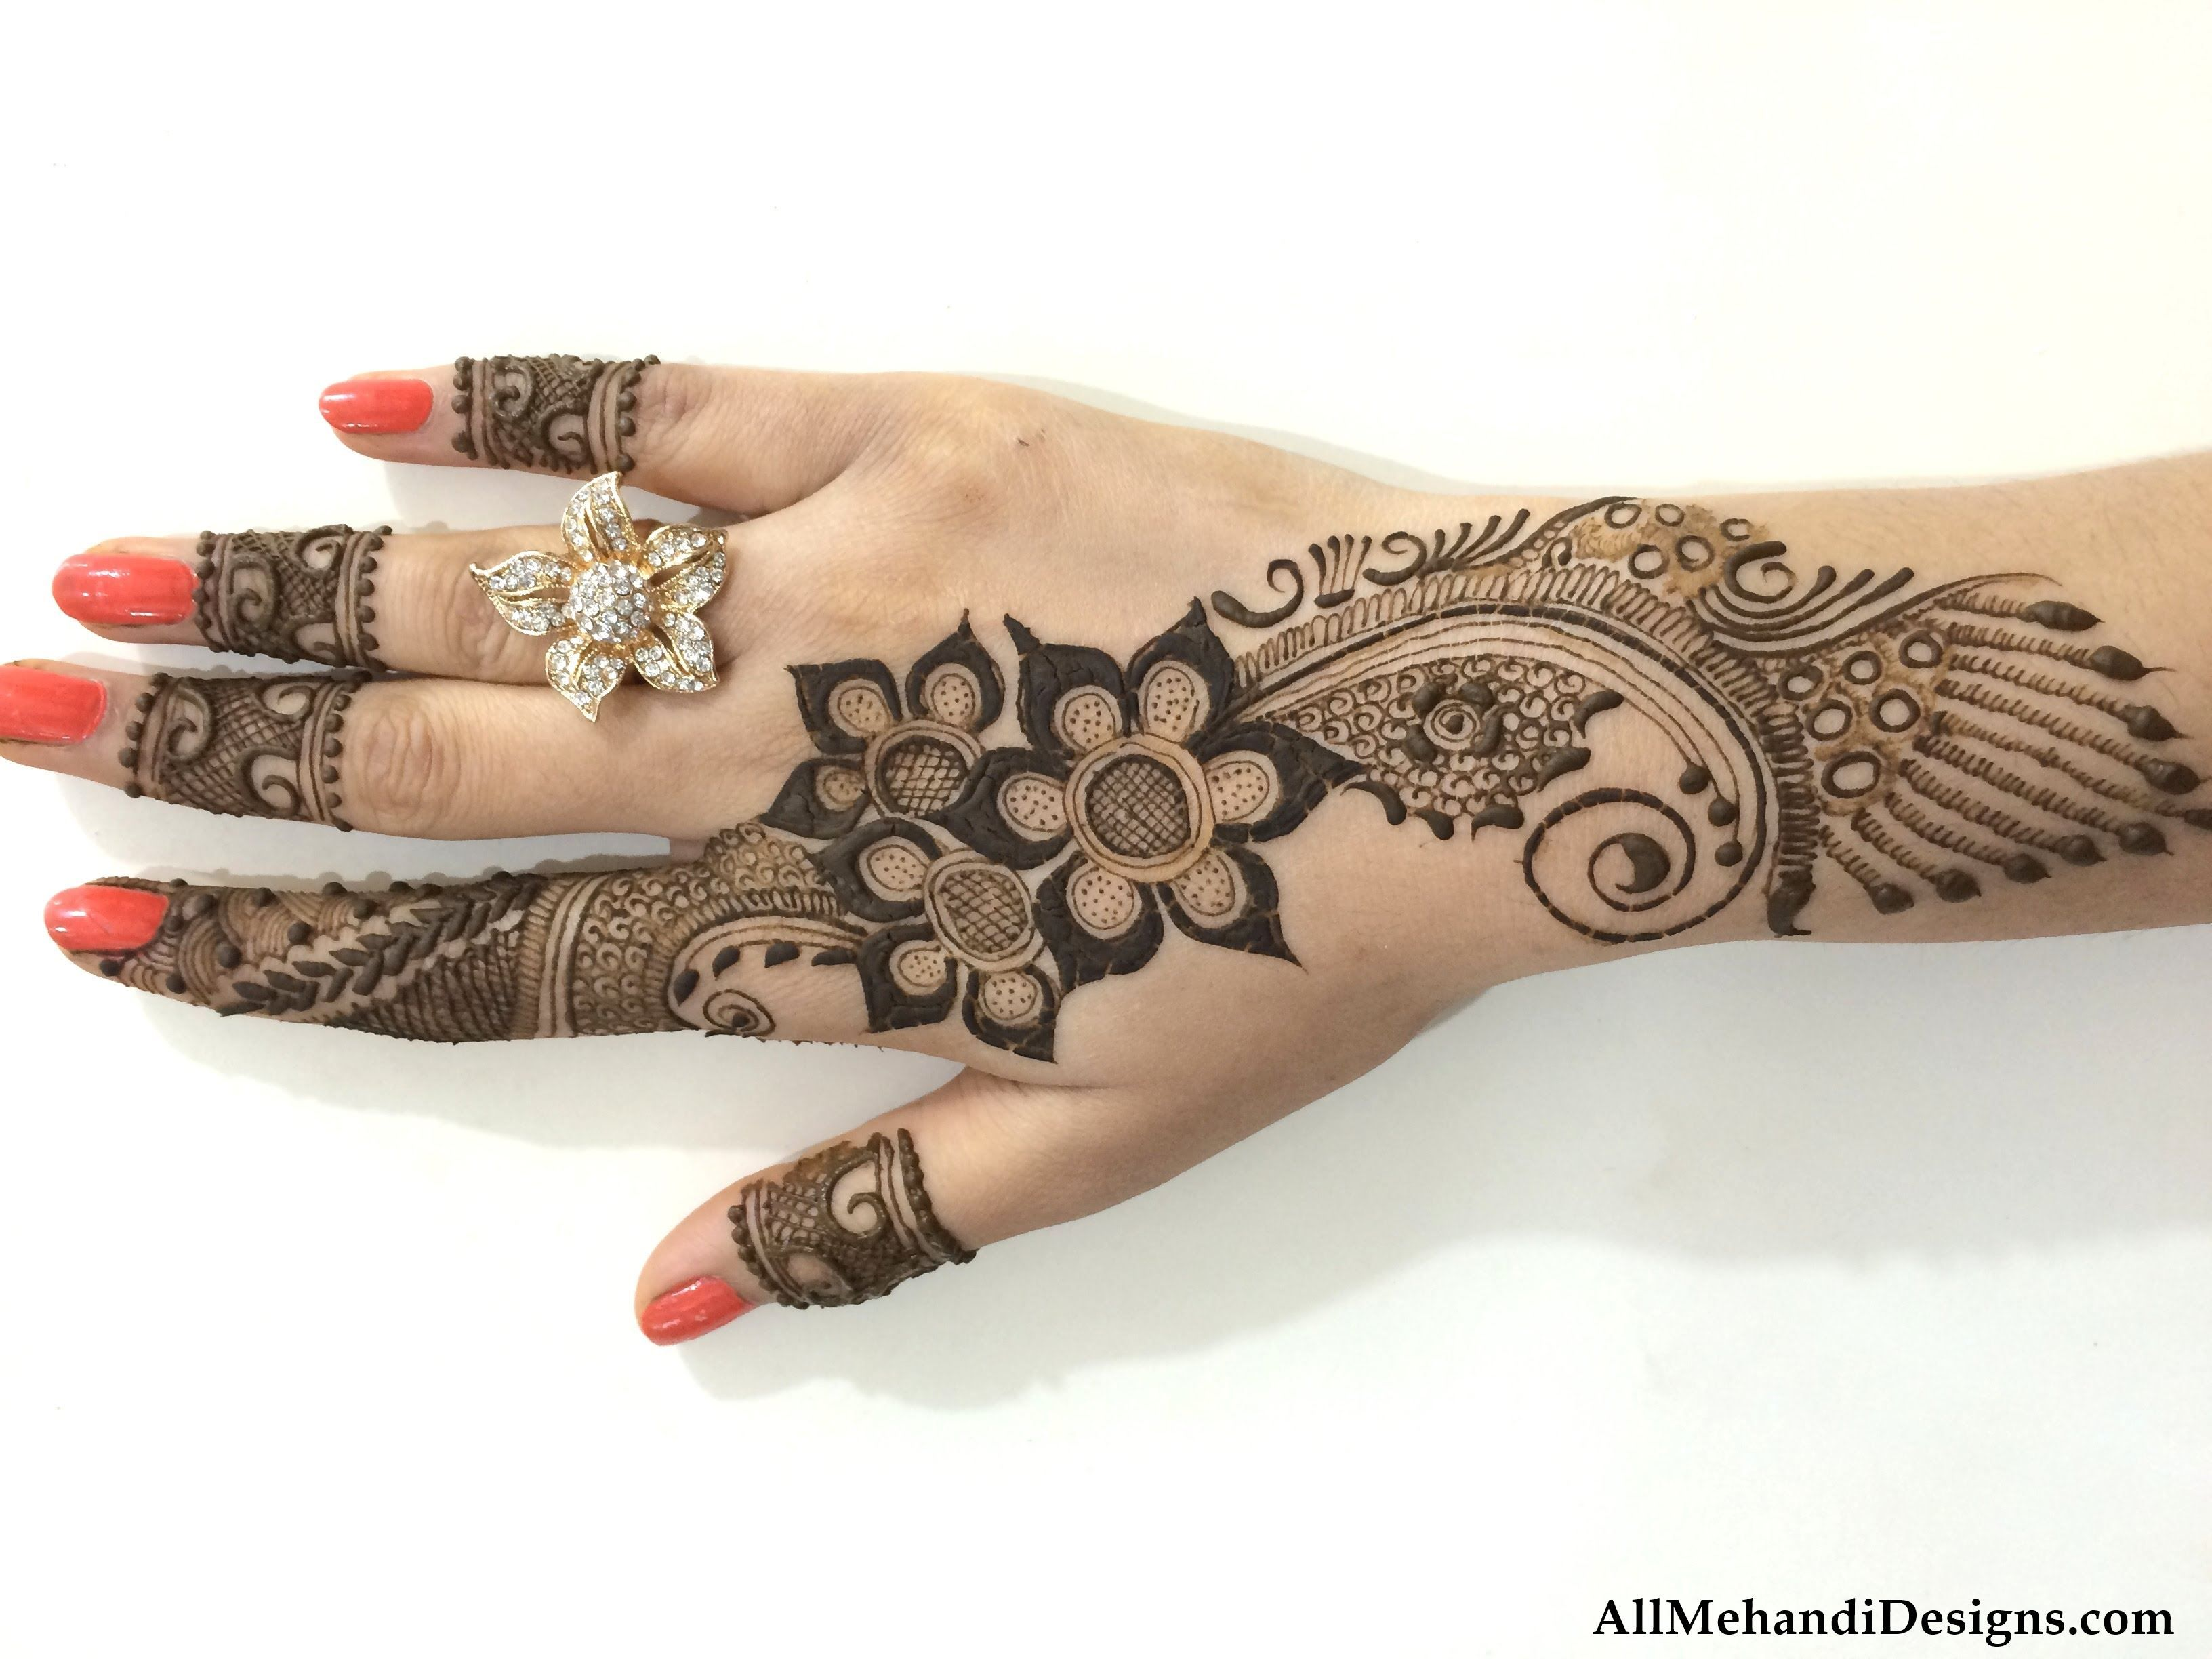 Mehndi Designs Hands Photo Gallery : Get most easy mehndi design images collection we have added